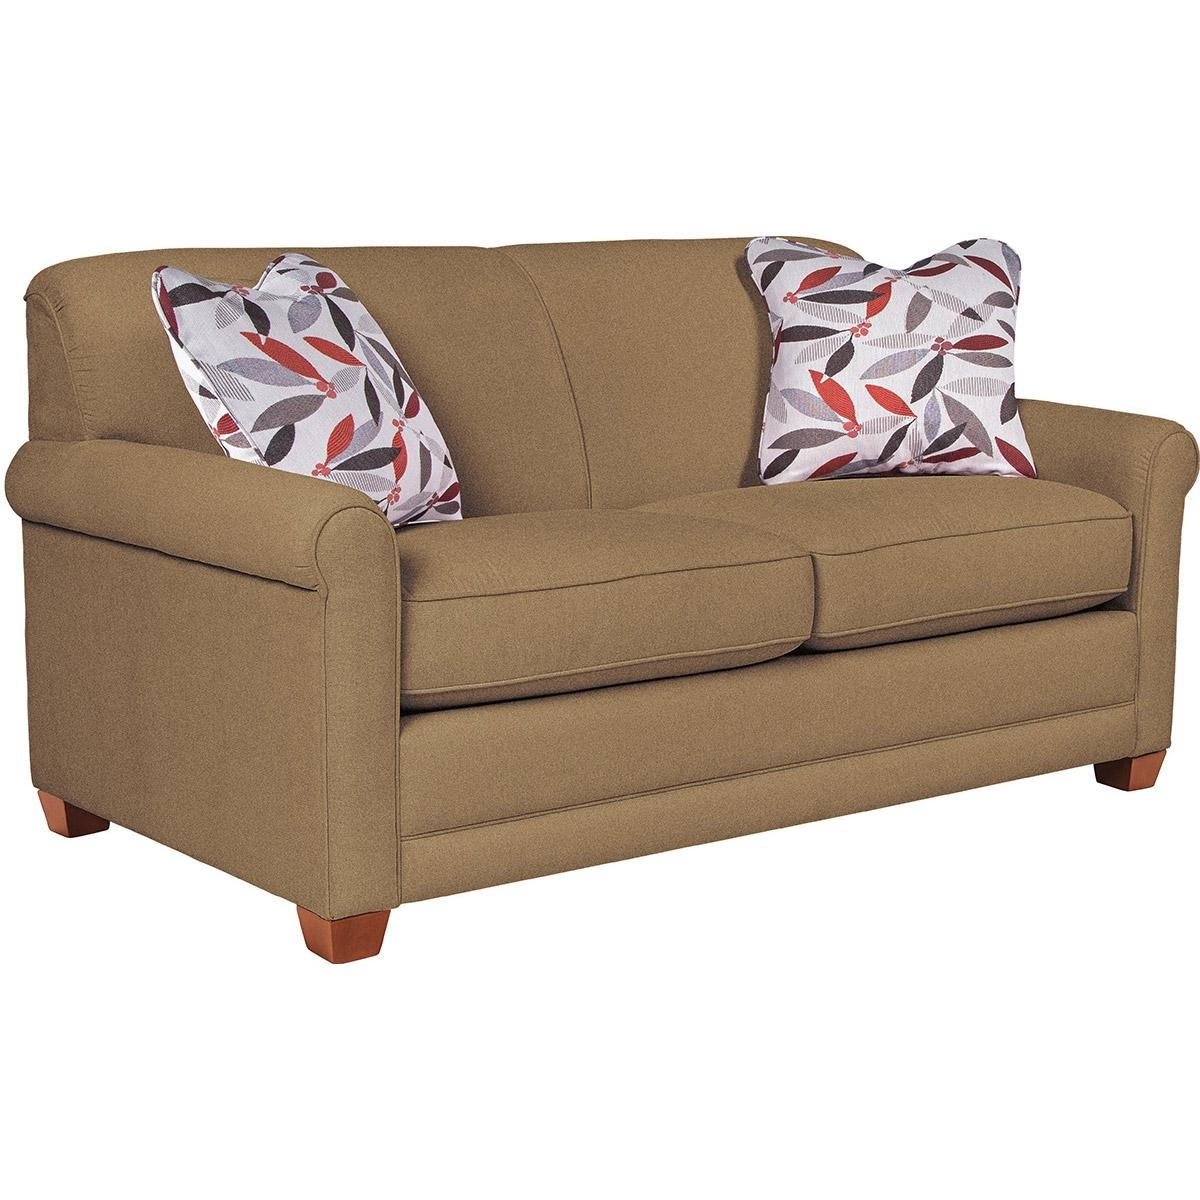 Comfortable & Casual Sofas | La Z Boy Regarding Lazy Boy Sofas (Image 2 of 20)